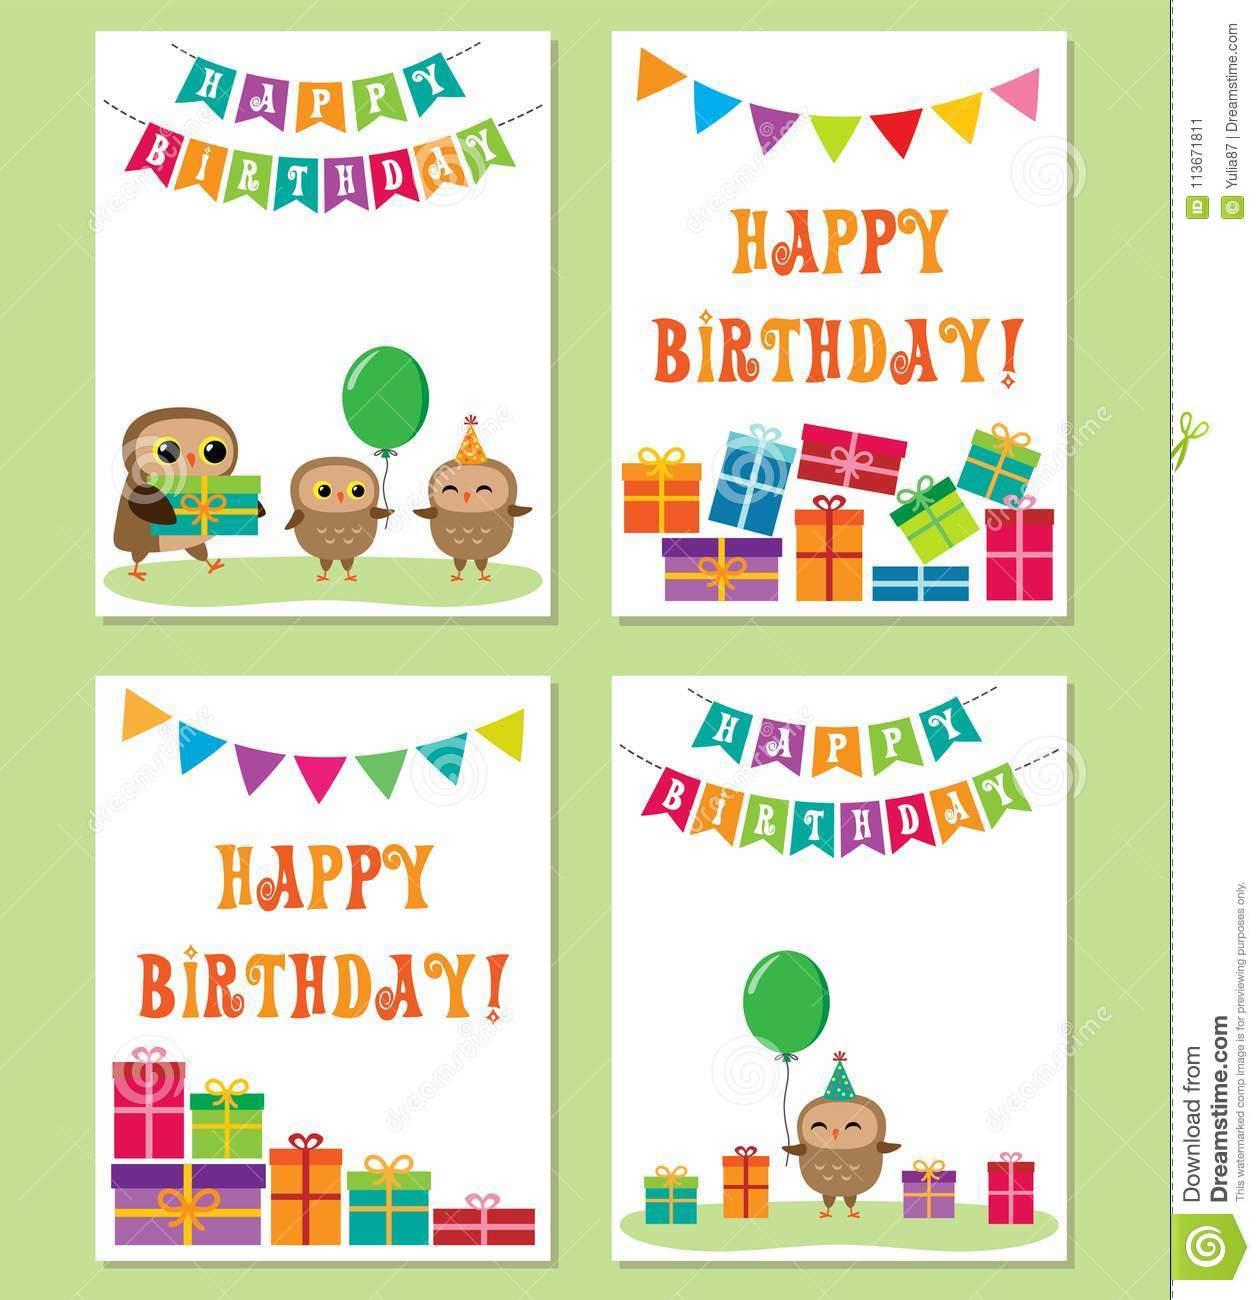 Birthday Cards With Cute Owls Vector Editable Templates For Party Invitation Or Postcard